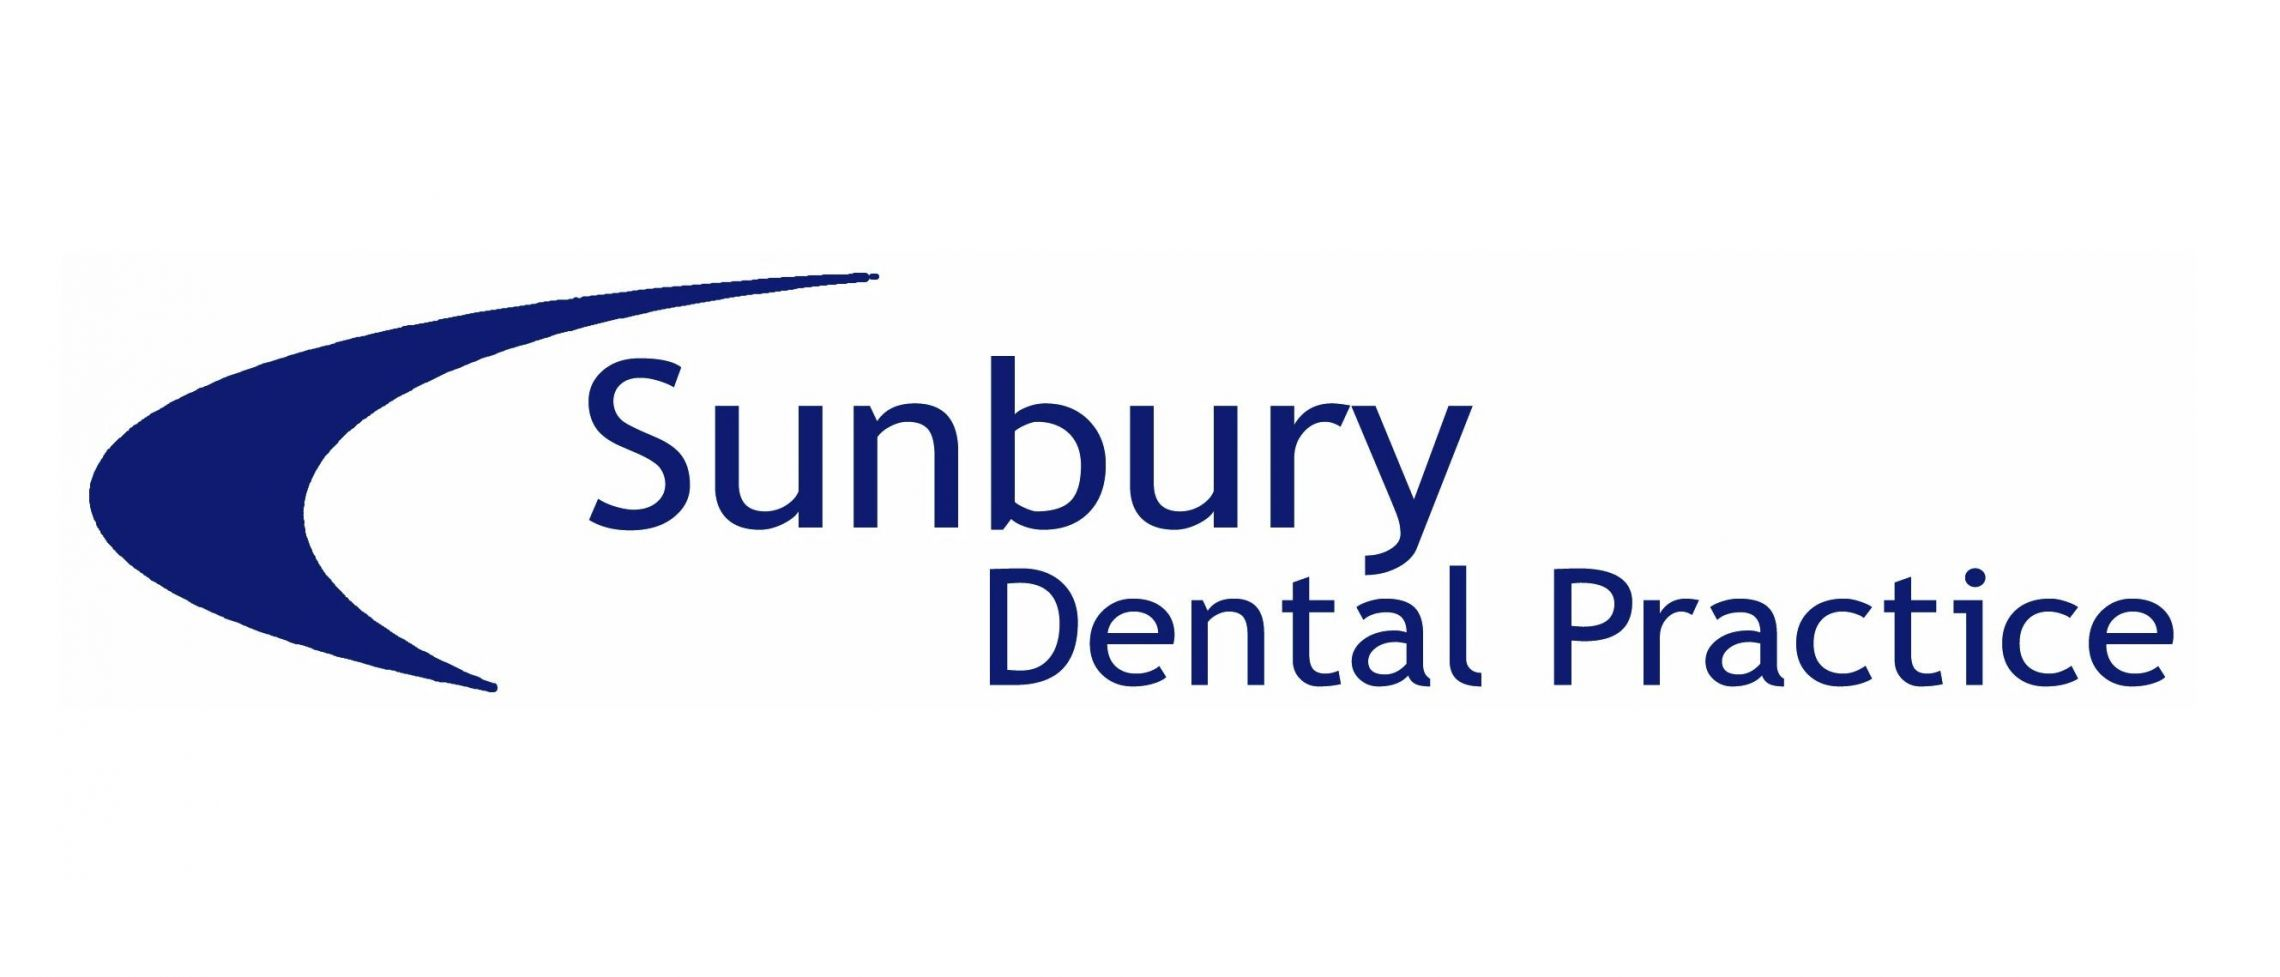 Sunbury Dental Practice